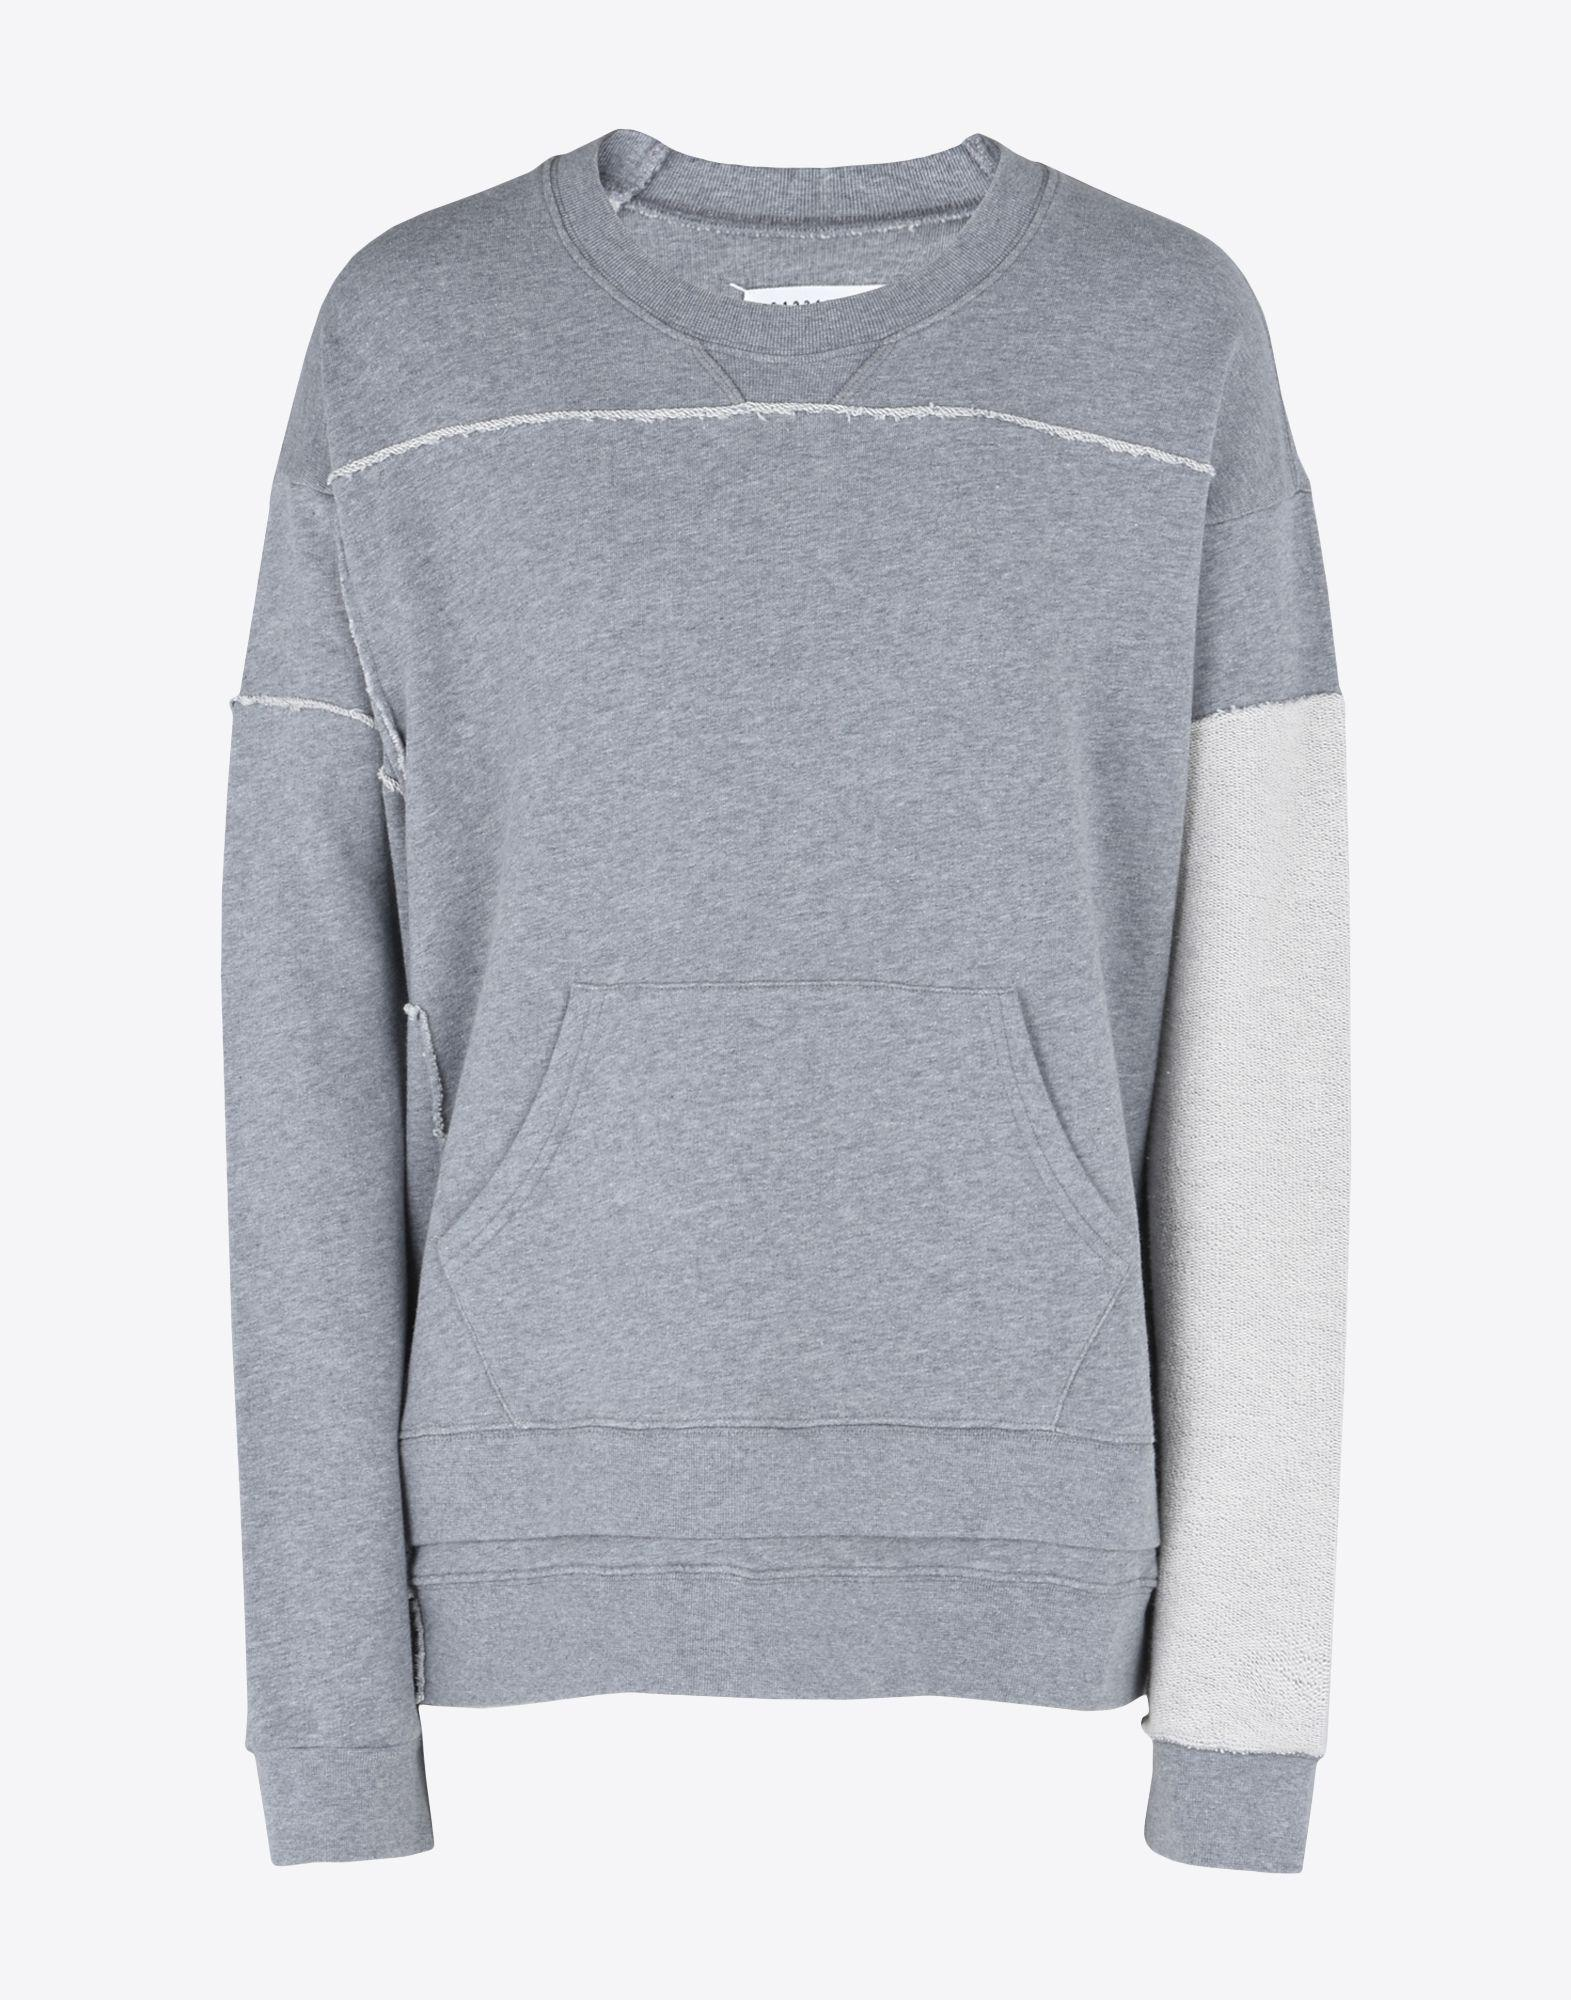 Leave A Message sweatshirt - Grey Maison Martin Margiela Cheap Pre Order Best Store To Get Cheap Price Marketable Cheap Online Outlet View From China JP5LzY